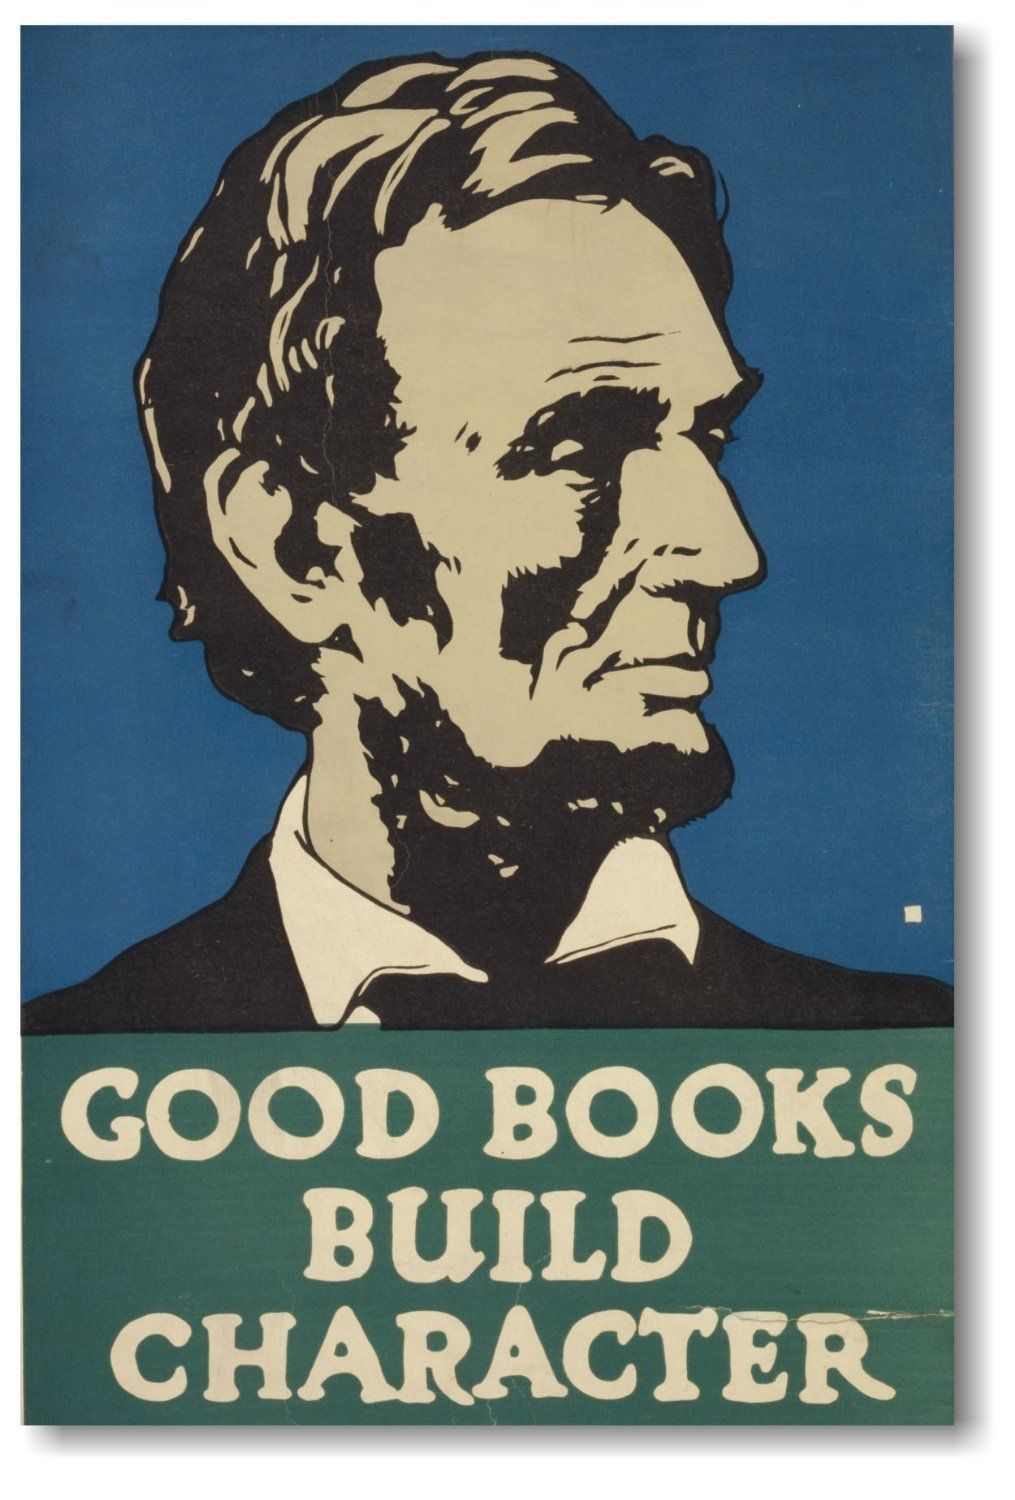 Http Sunnydaypublishing Com Books Wpa Posters Book Posters